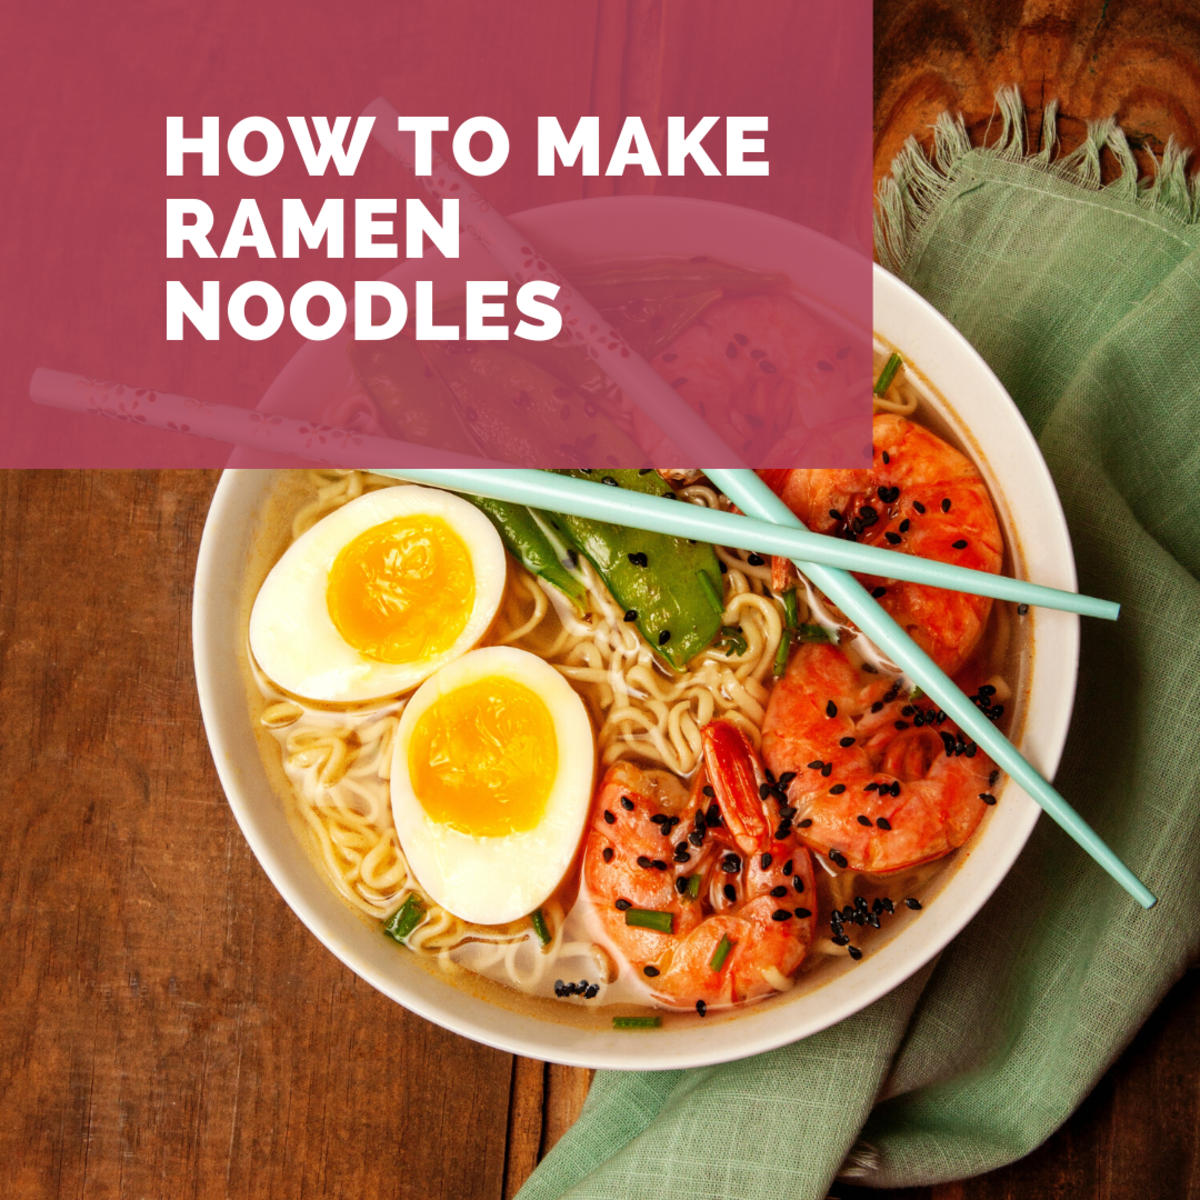 Make ramen at home and impressive your family with a delicious meal.